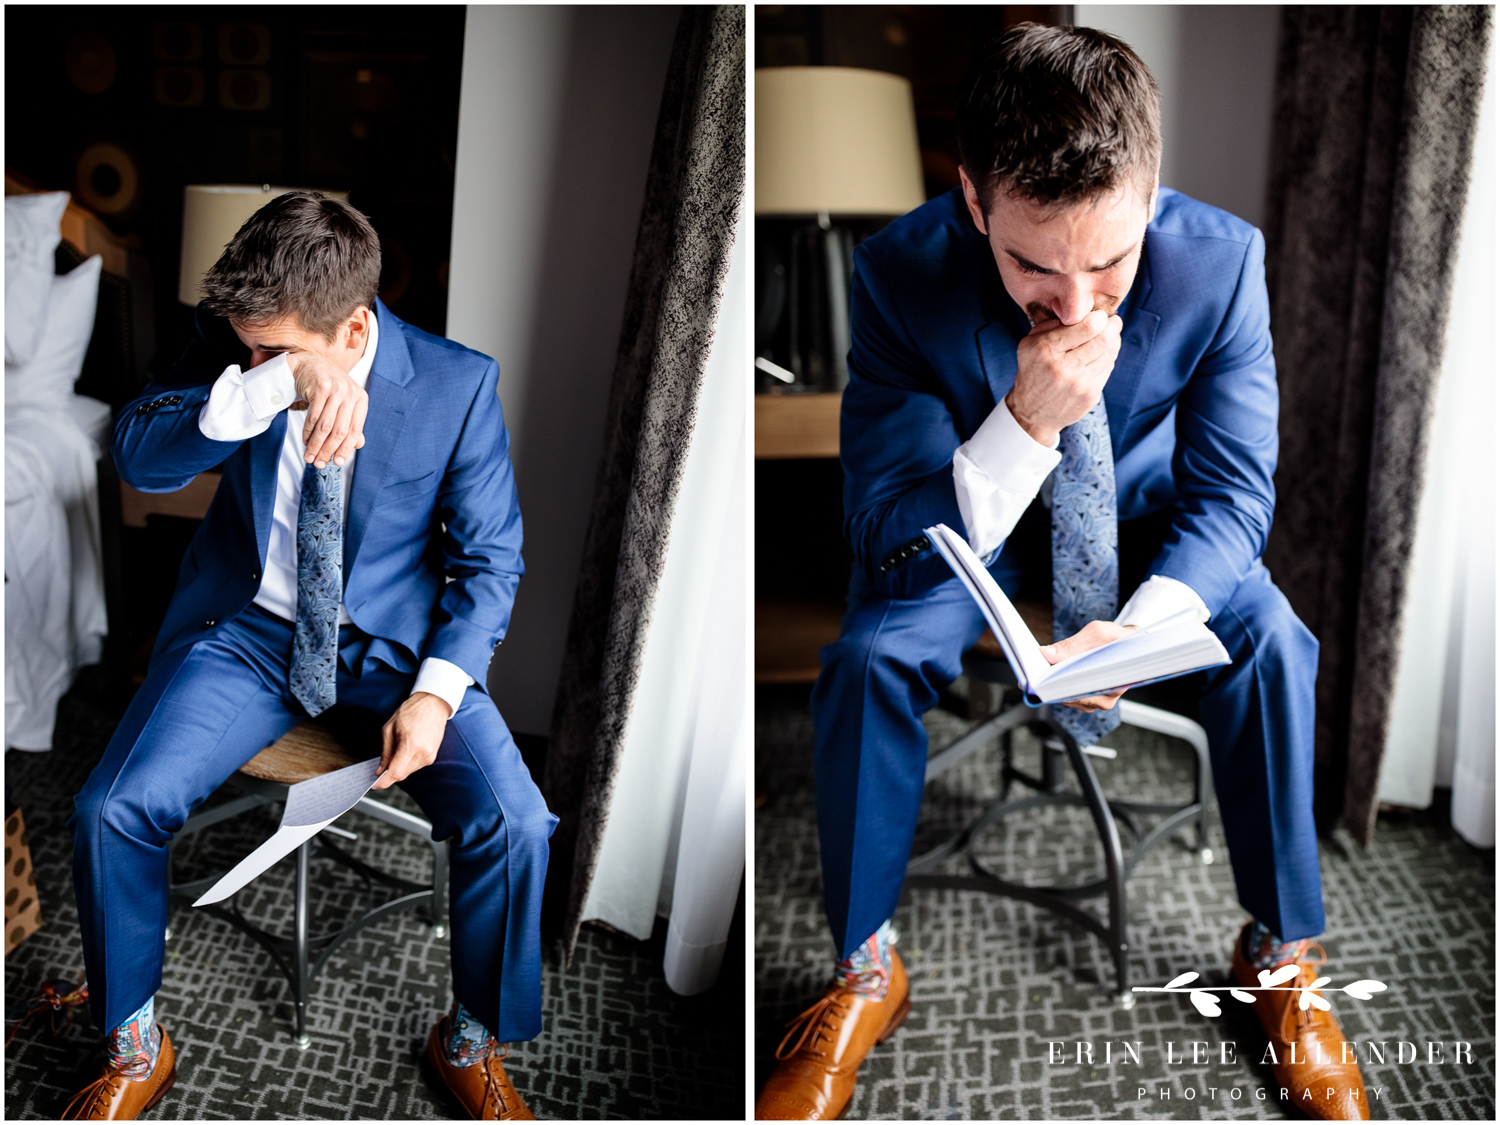 Groom-reads-letter-from-bride